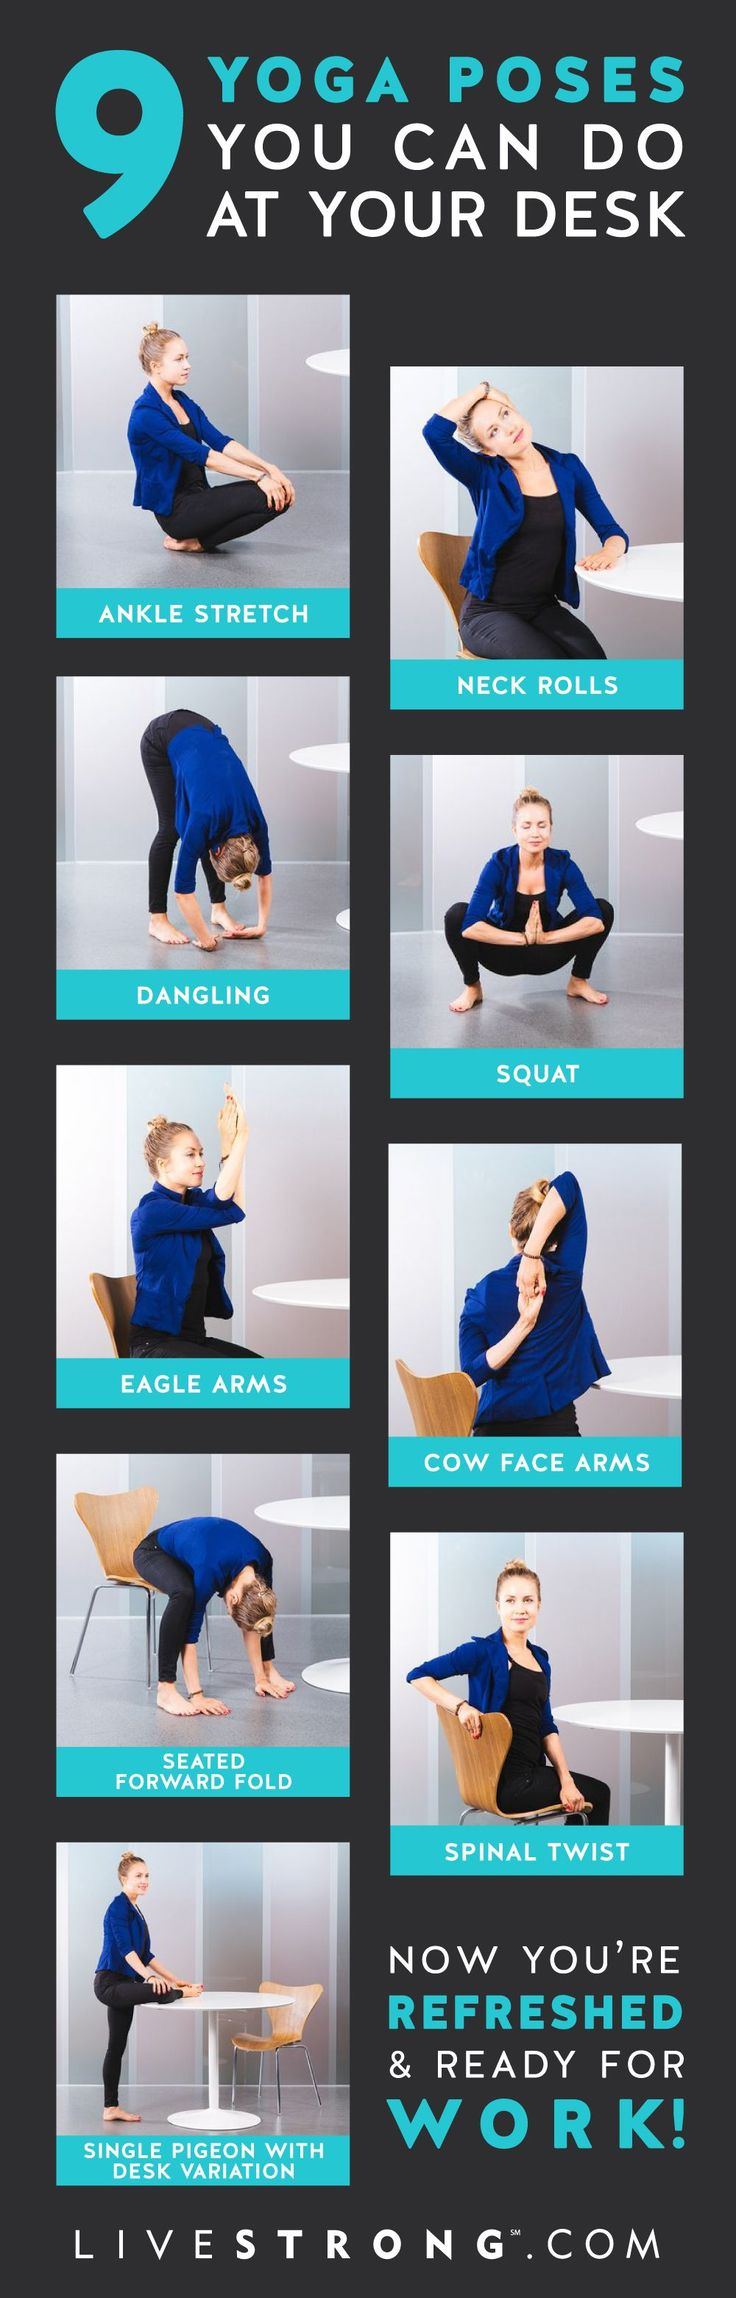 Chair yoga sequence free - 9 Yoga Poses You Can Do At Your Desk Right Now